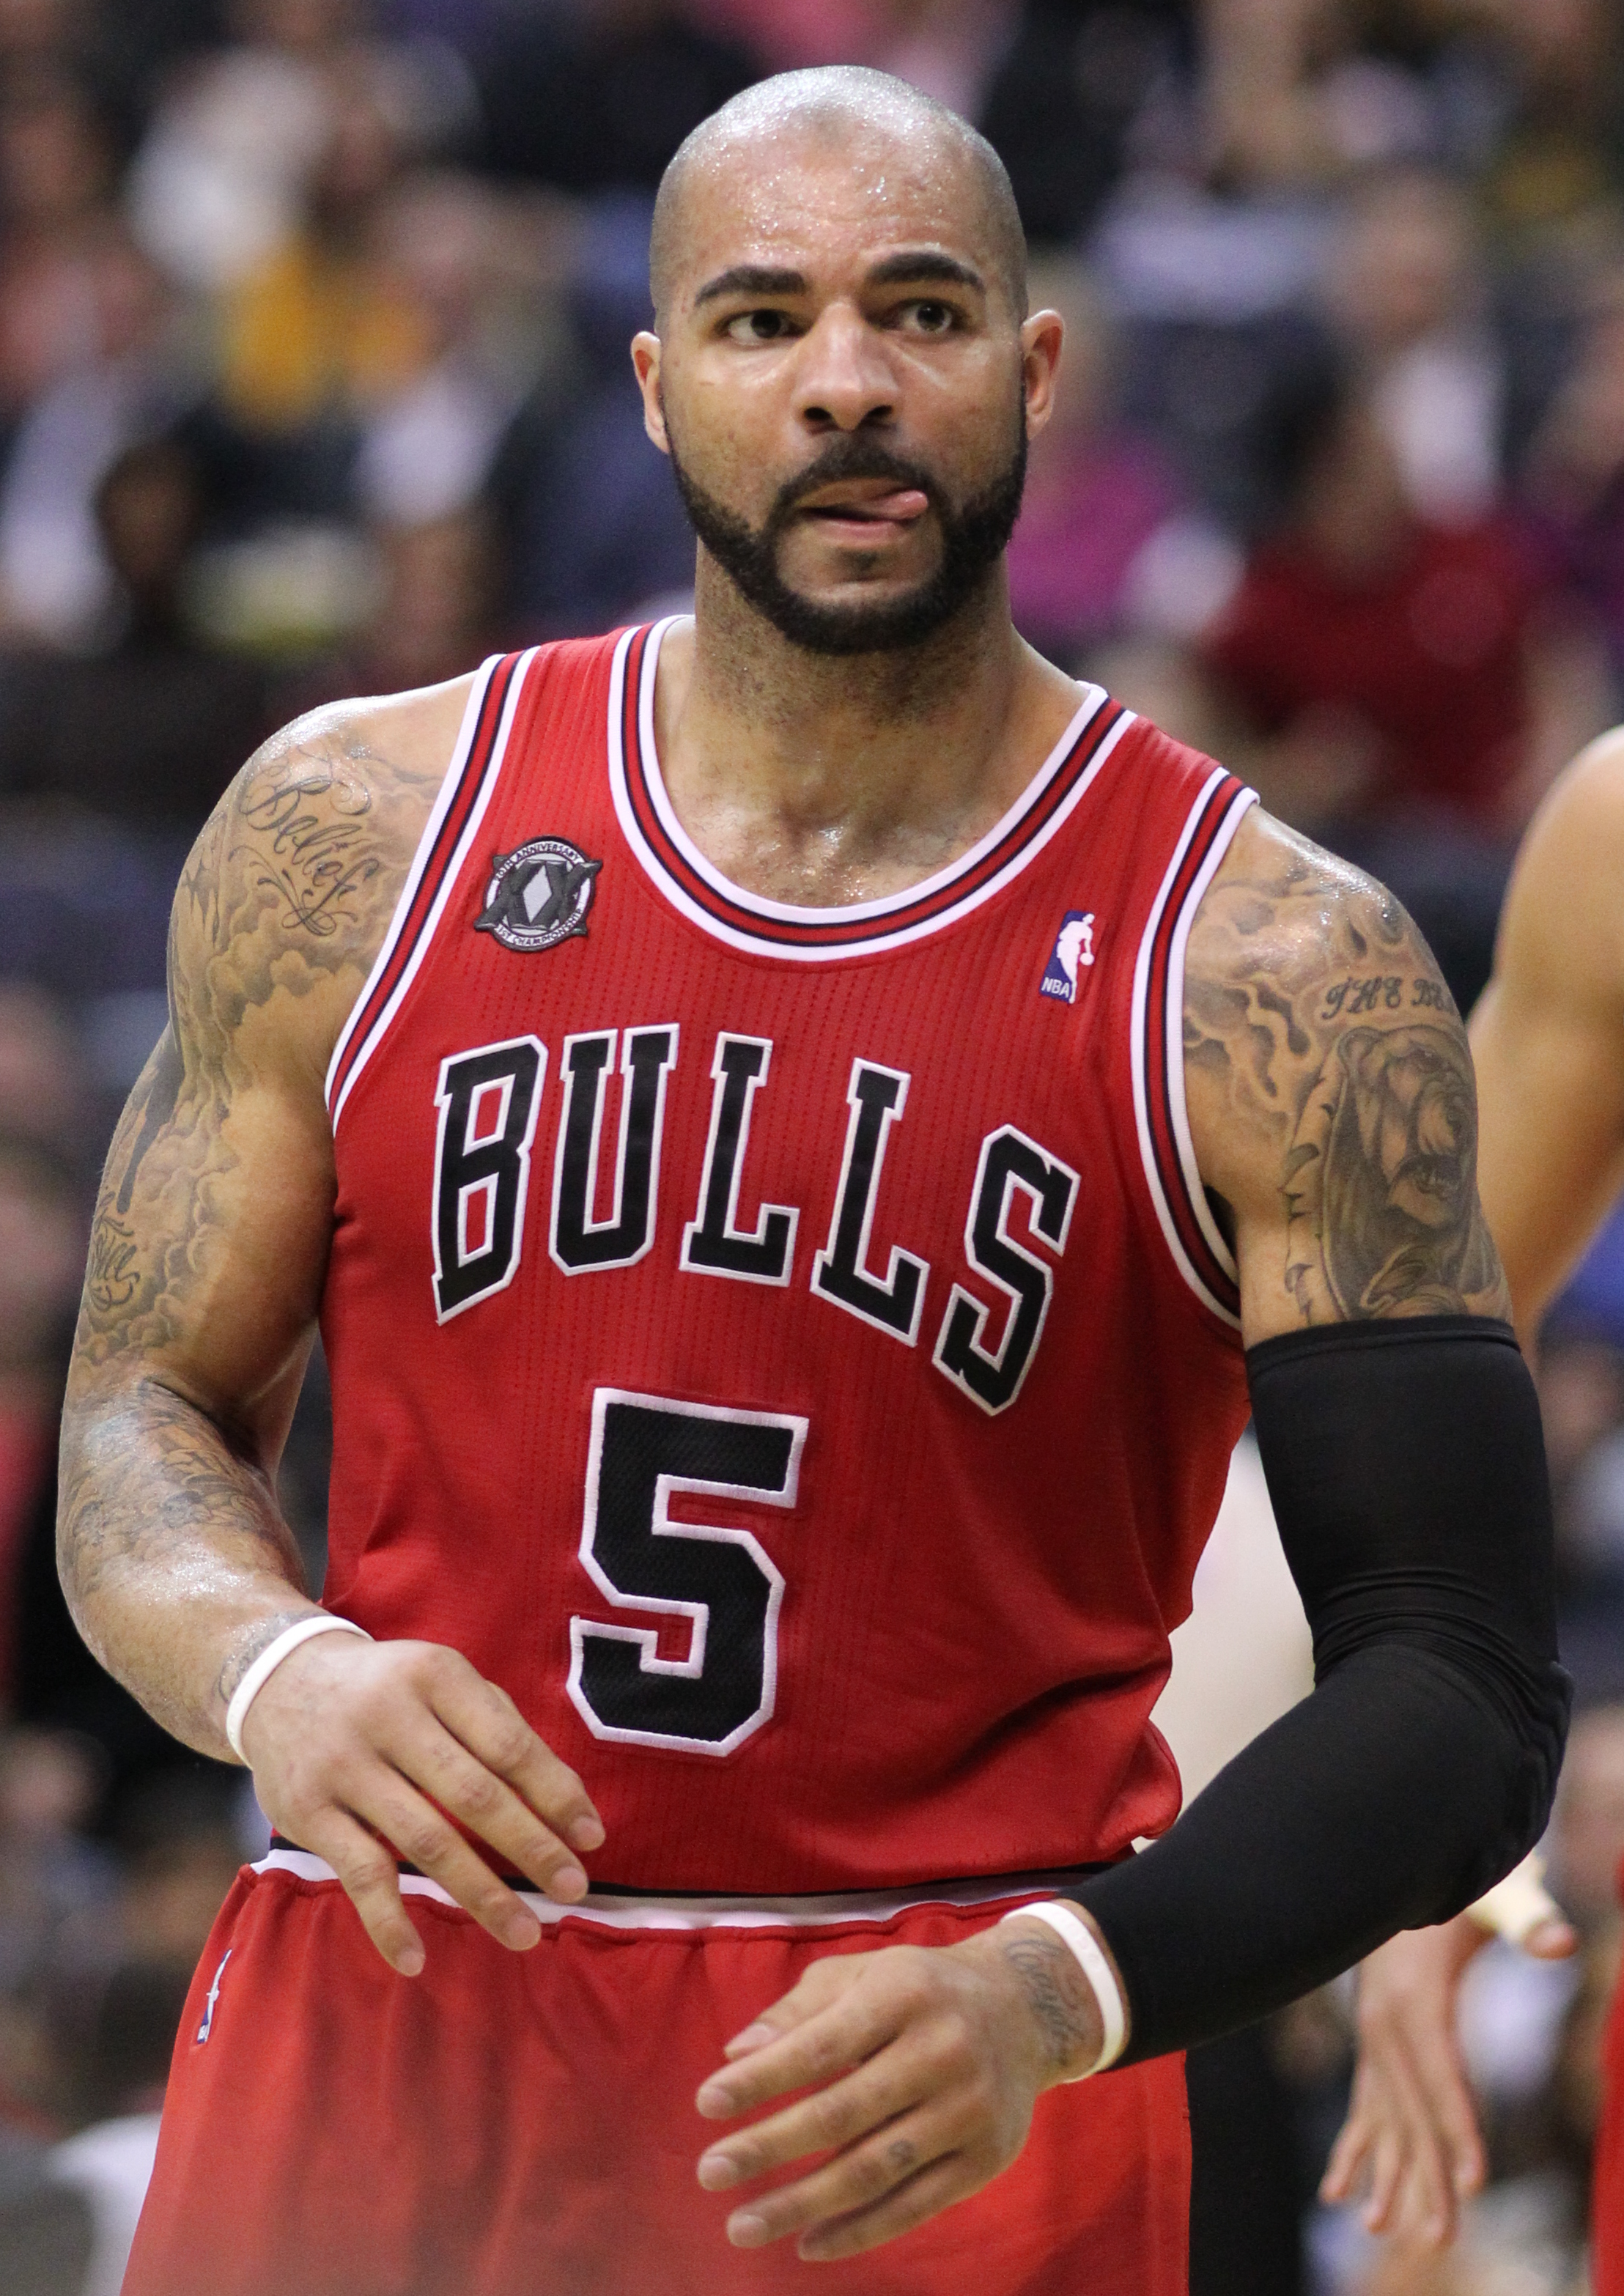 Carlos Boozer earned a 3 million dollar salary, leaving the net worth at 24 million in 2017